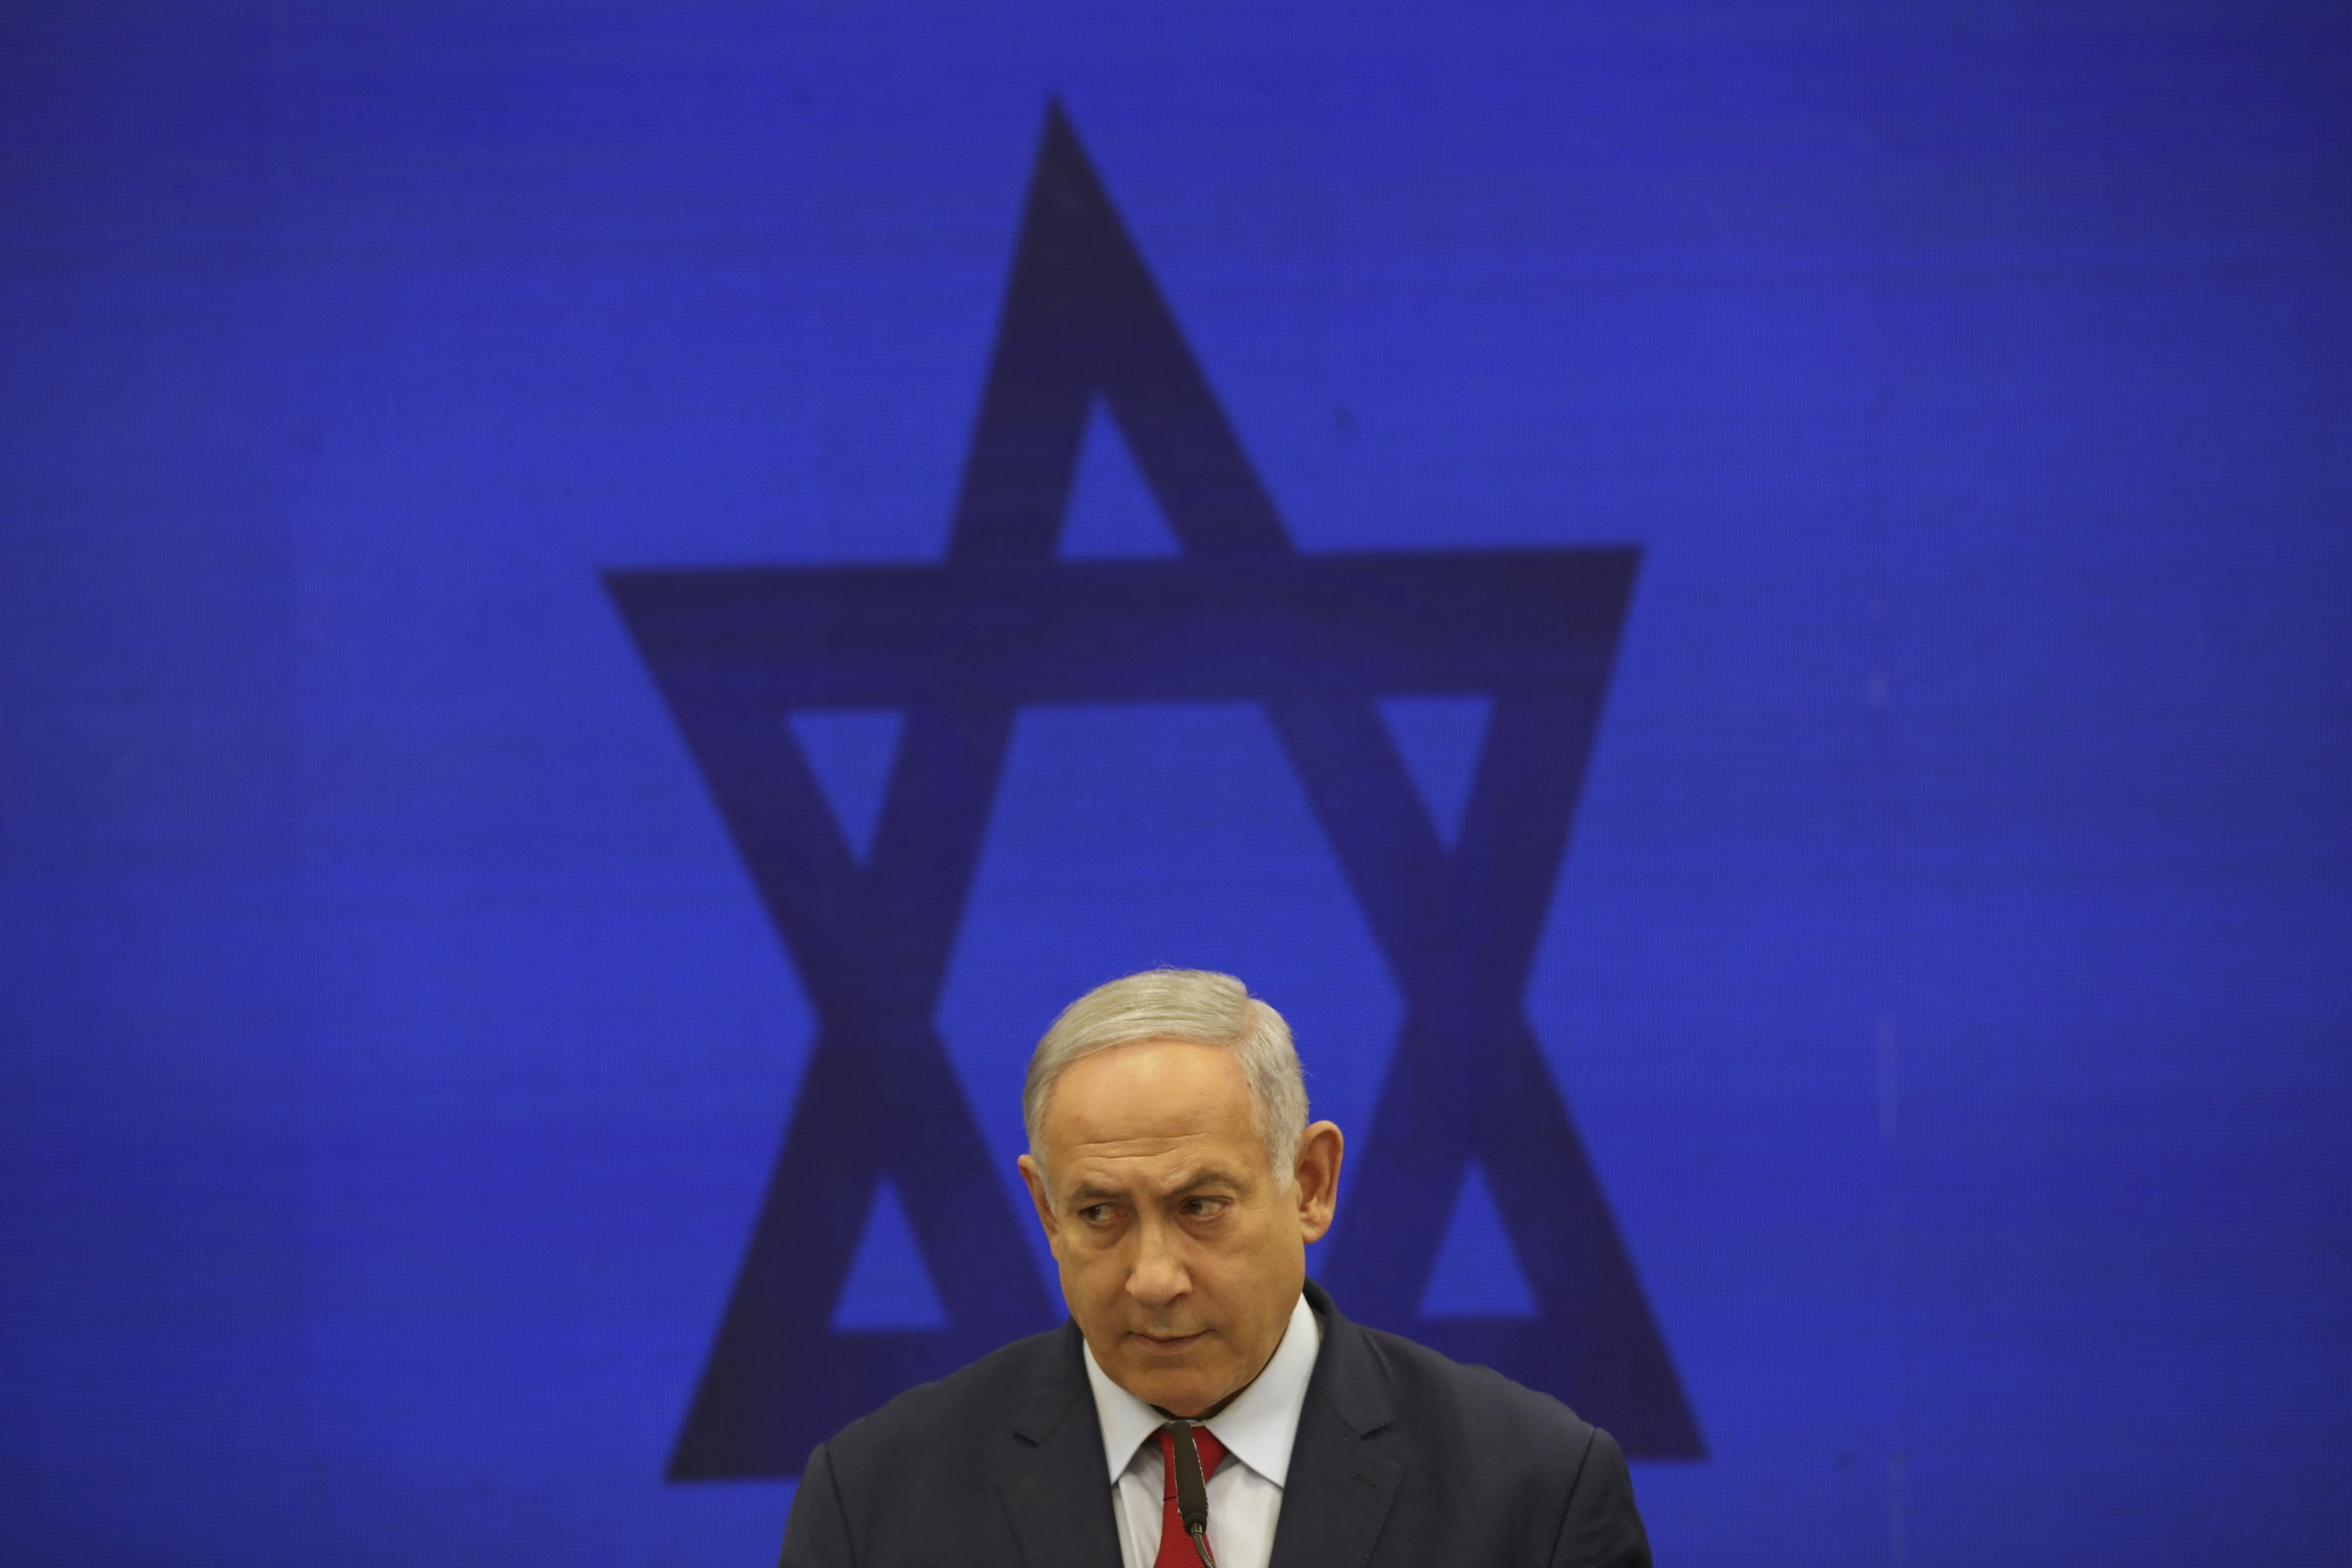 Israel's Netanyahu indicted on corruption charges